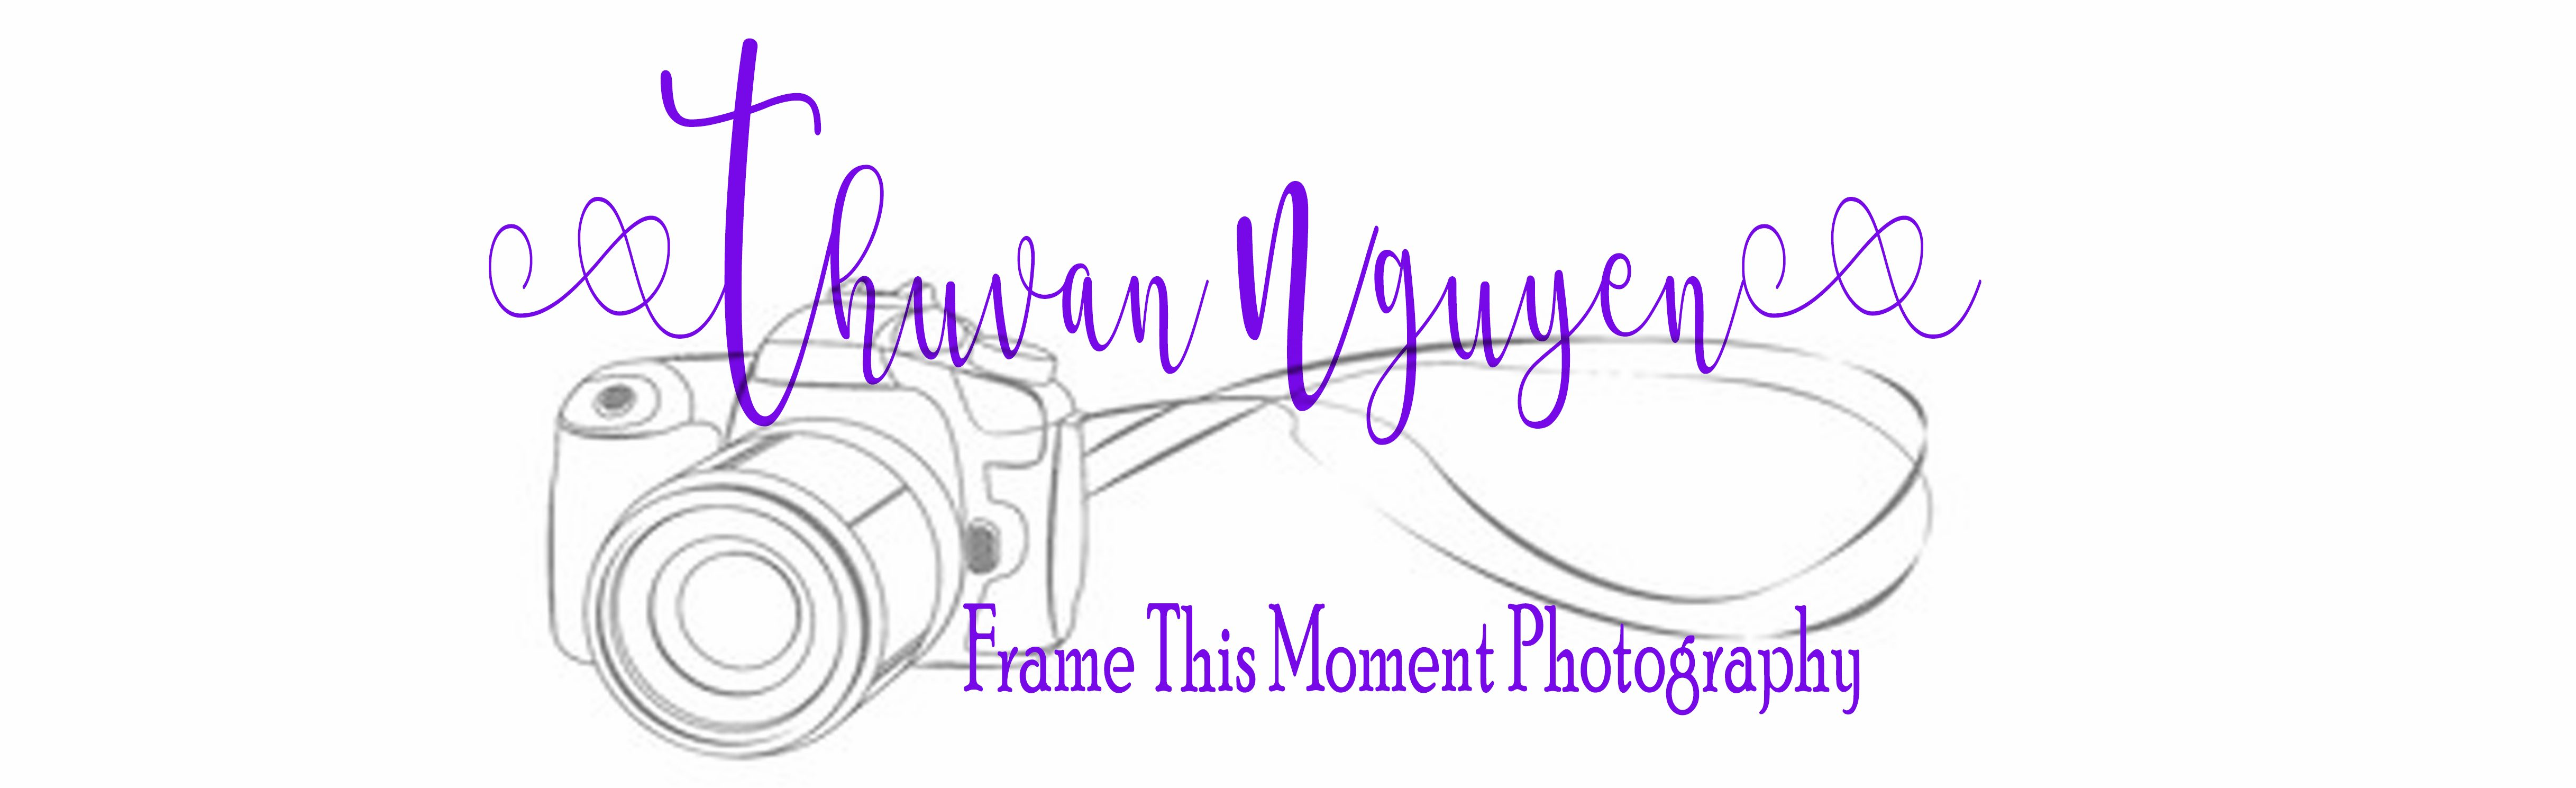 Frame This Moment Photography by Thuvan